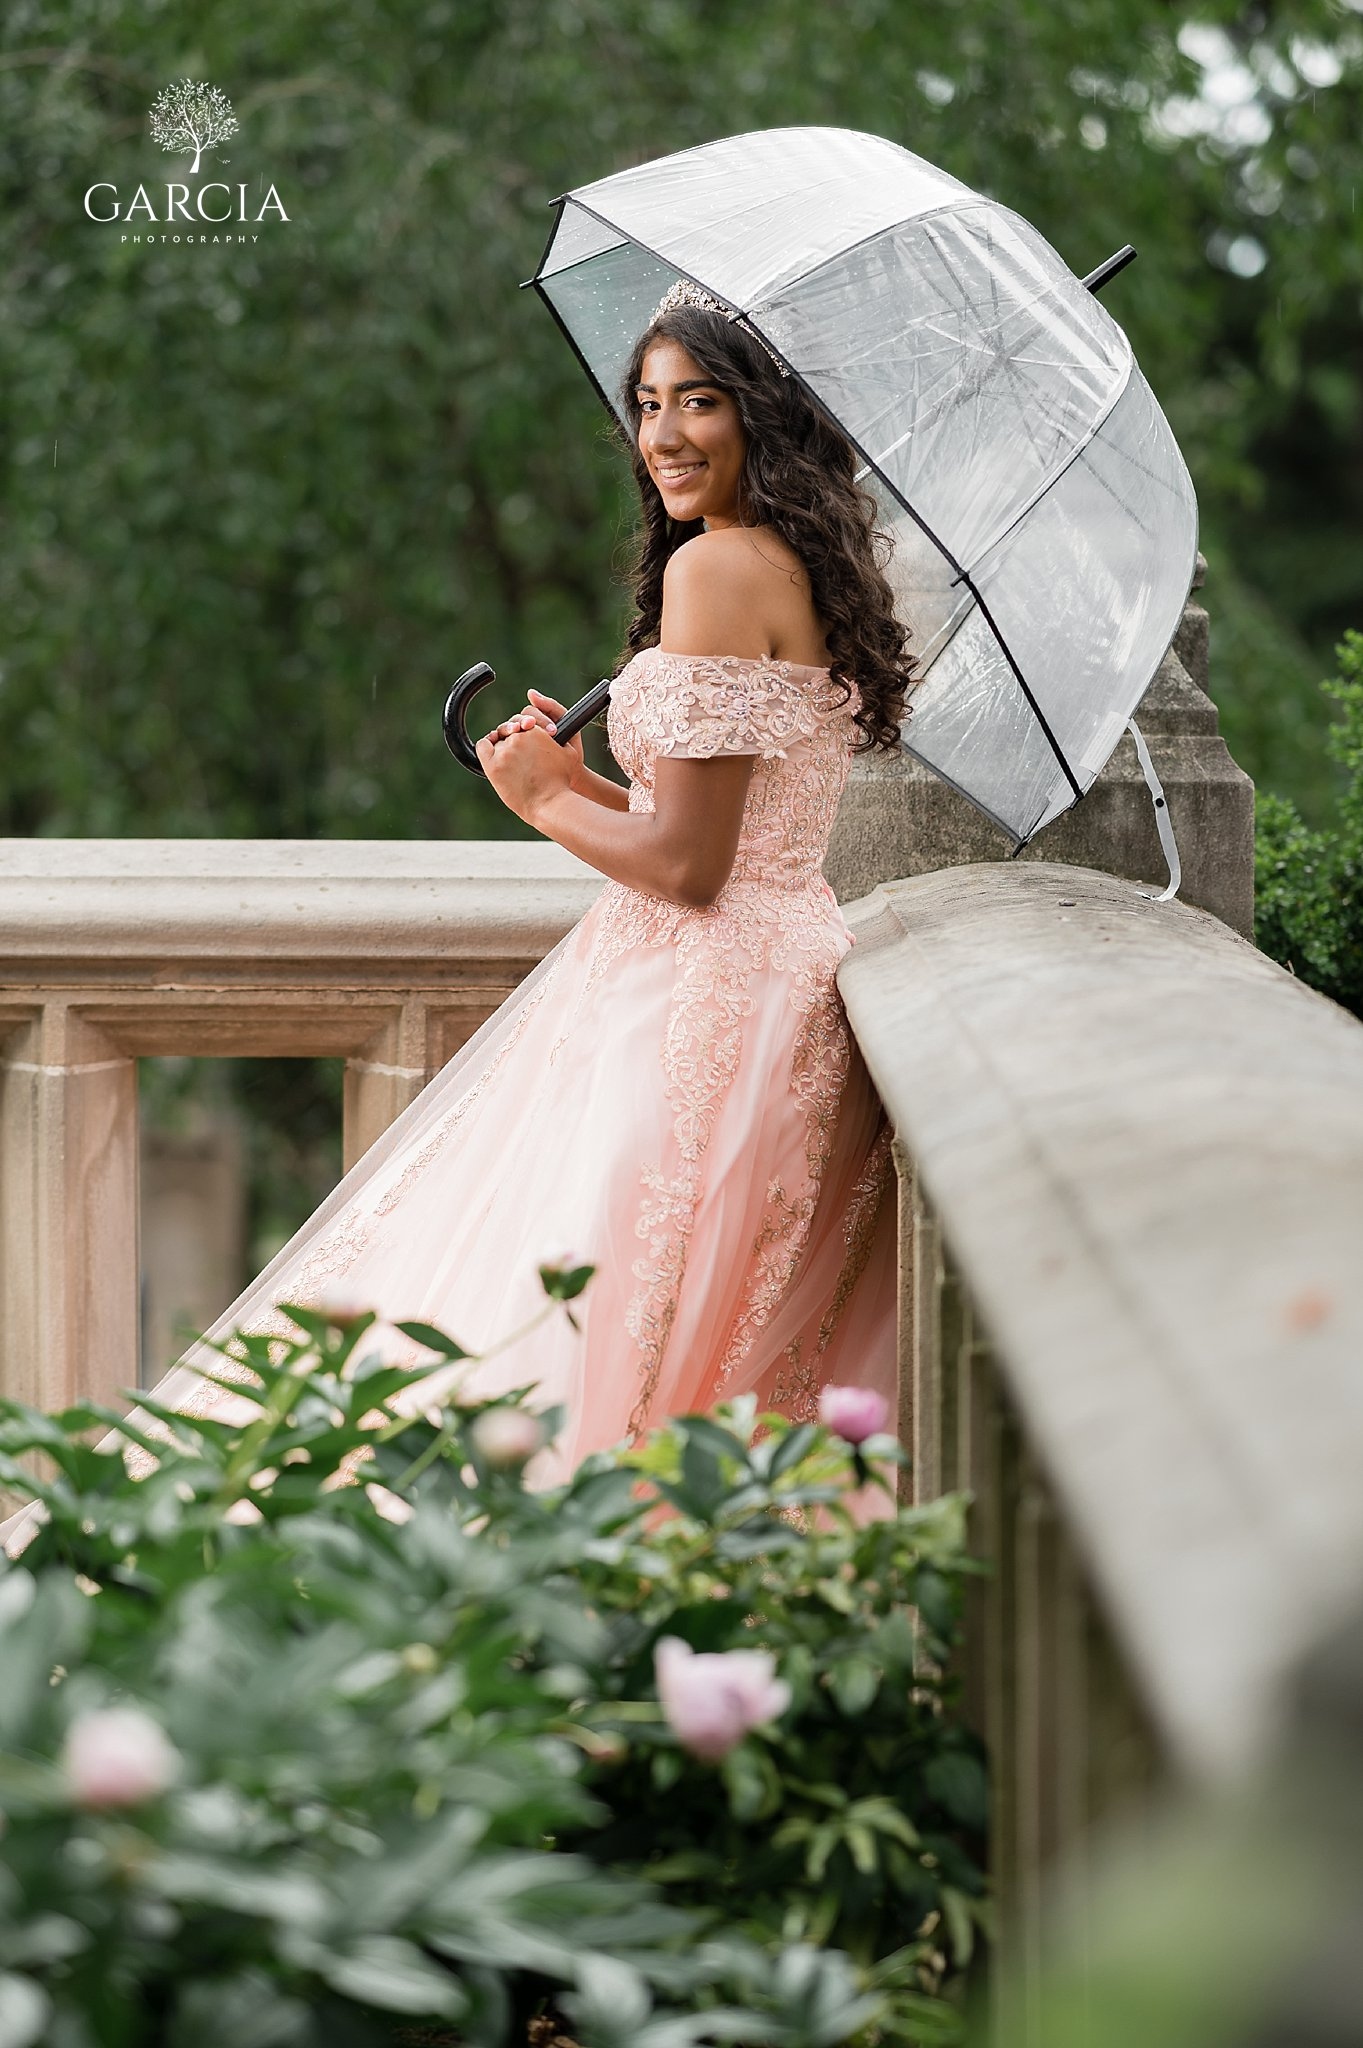 Emily-Quince-Session-Garcia-Photography-7813.jpg